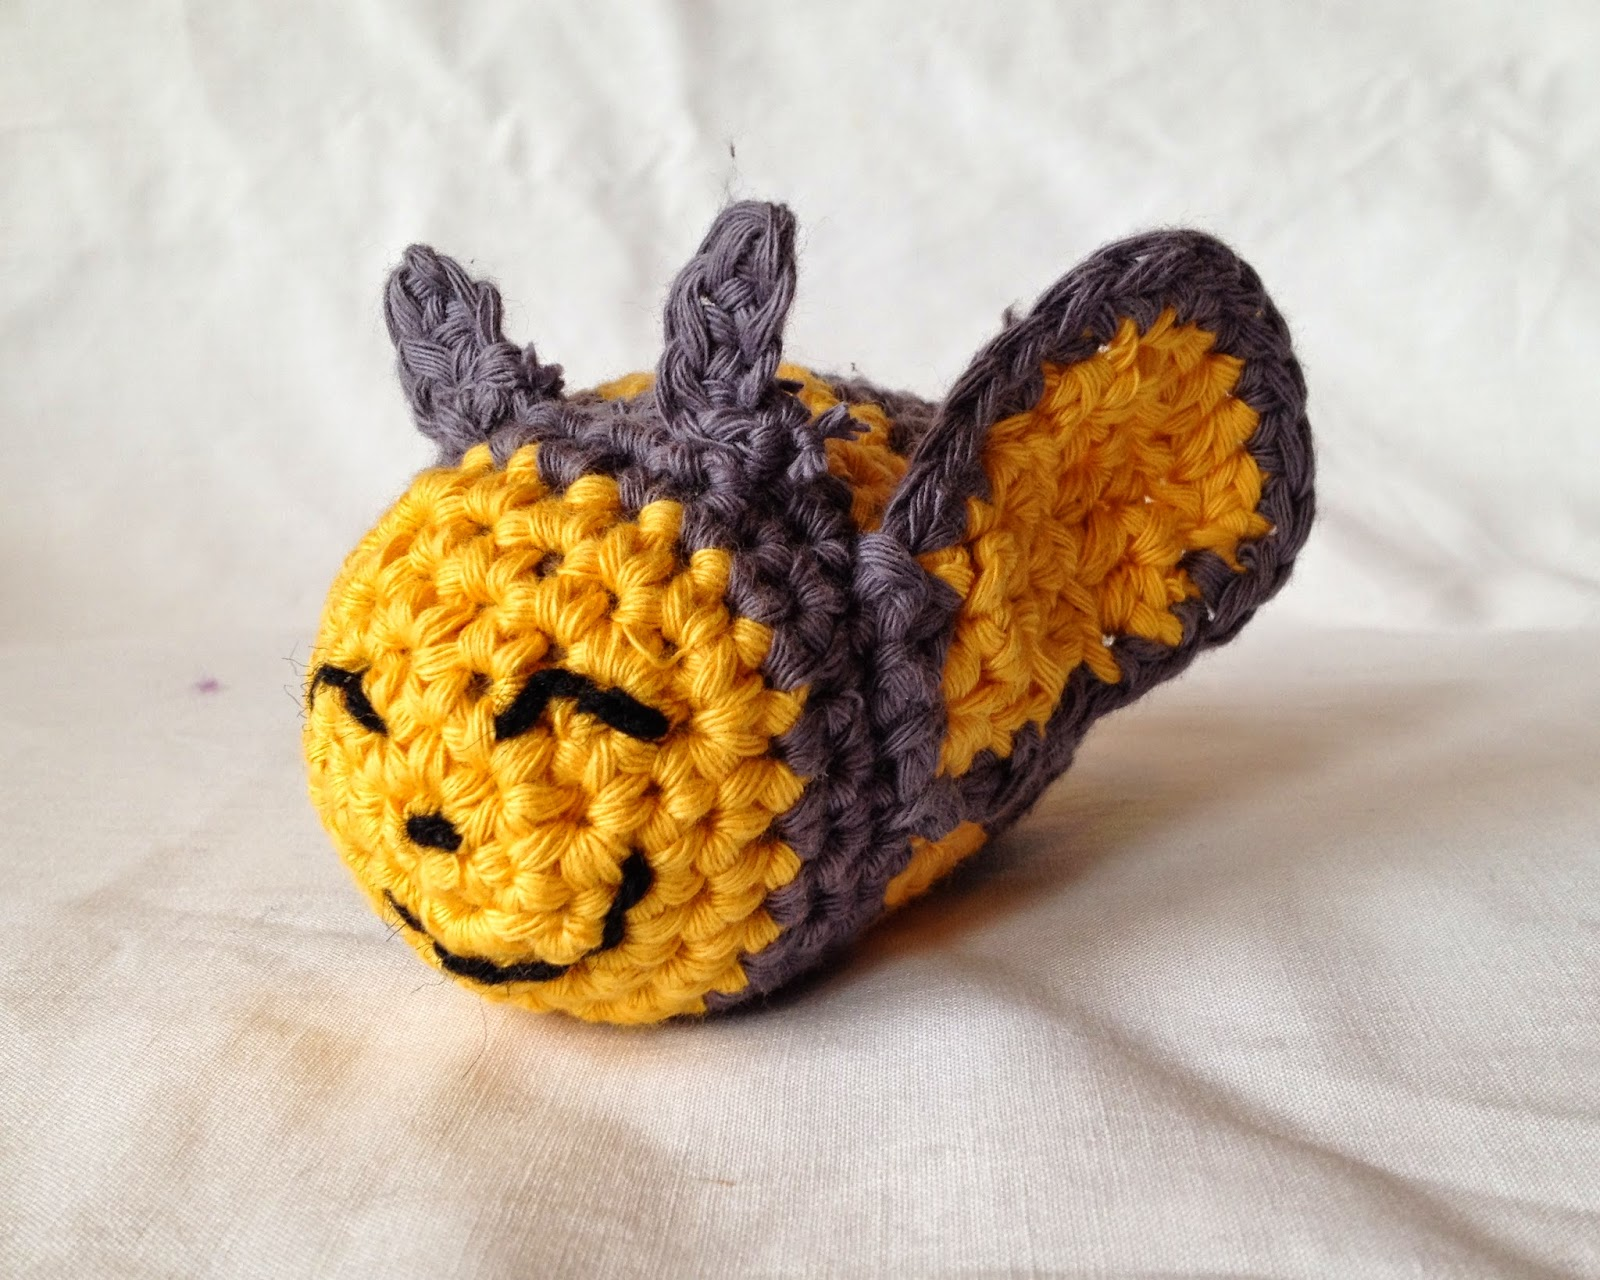 Free Crochet Patterns Yarn Bee : the geeky knitter: elvis the bumble bee - free crochet pattern